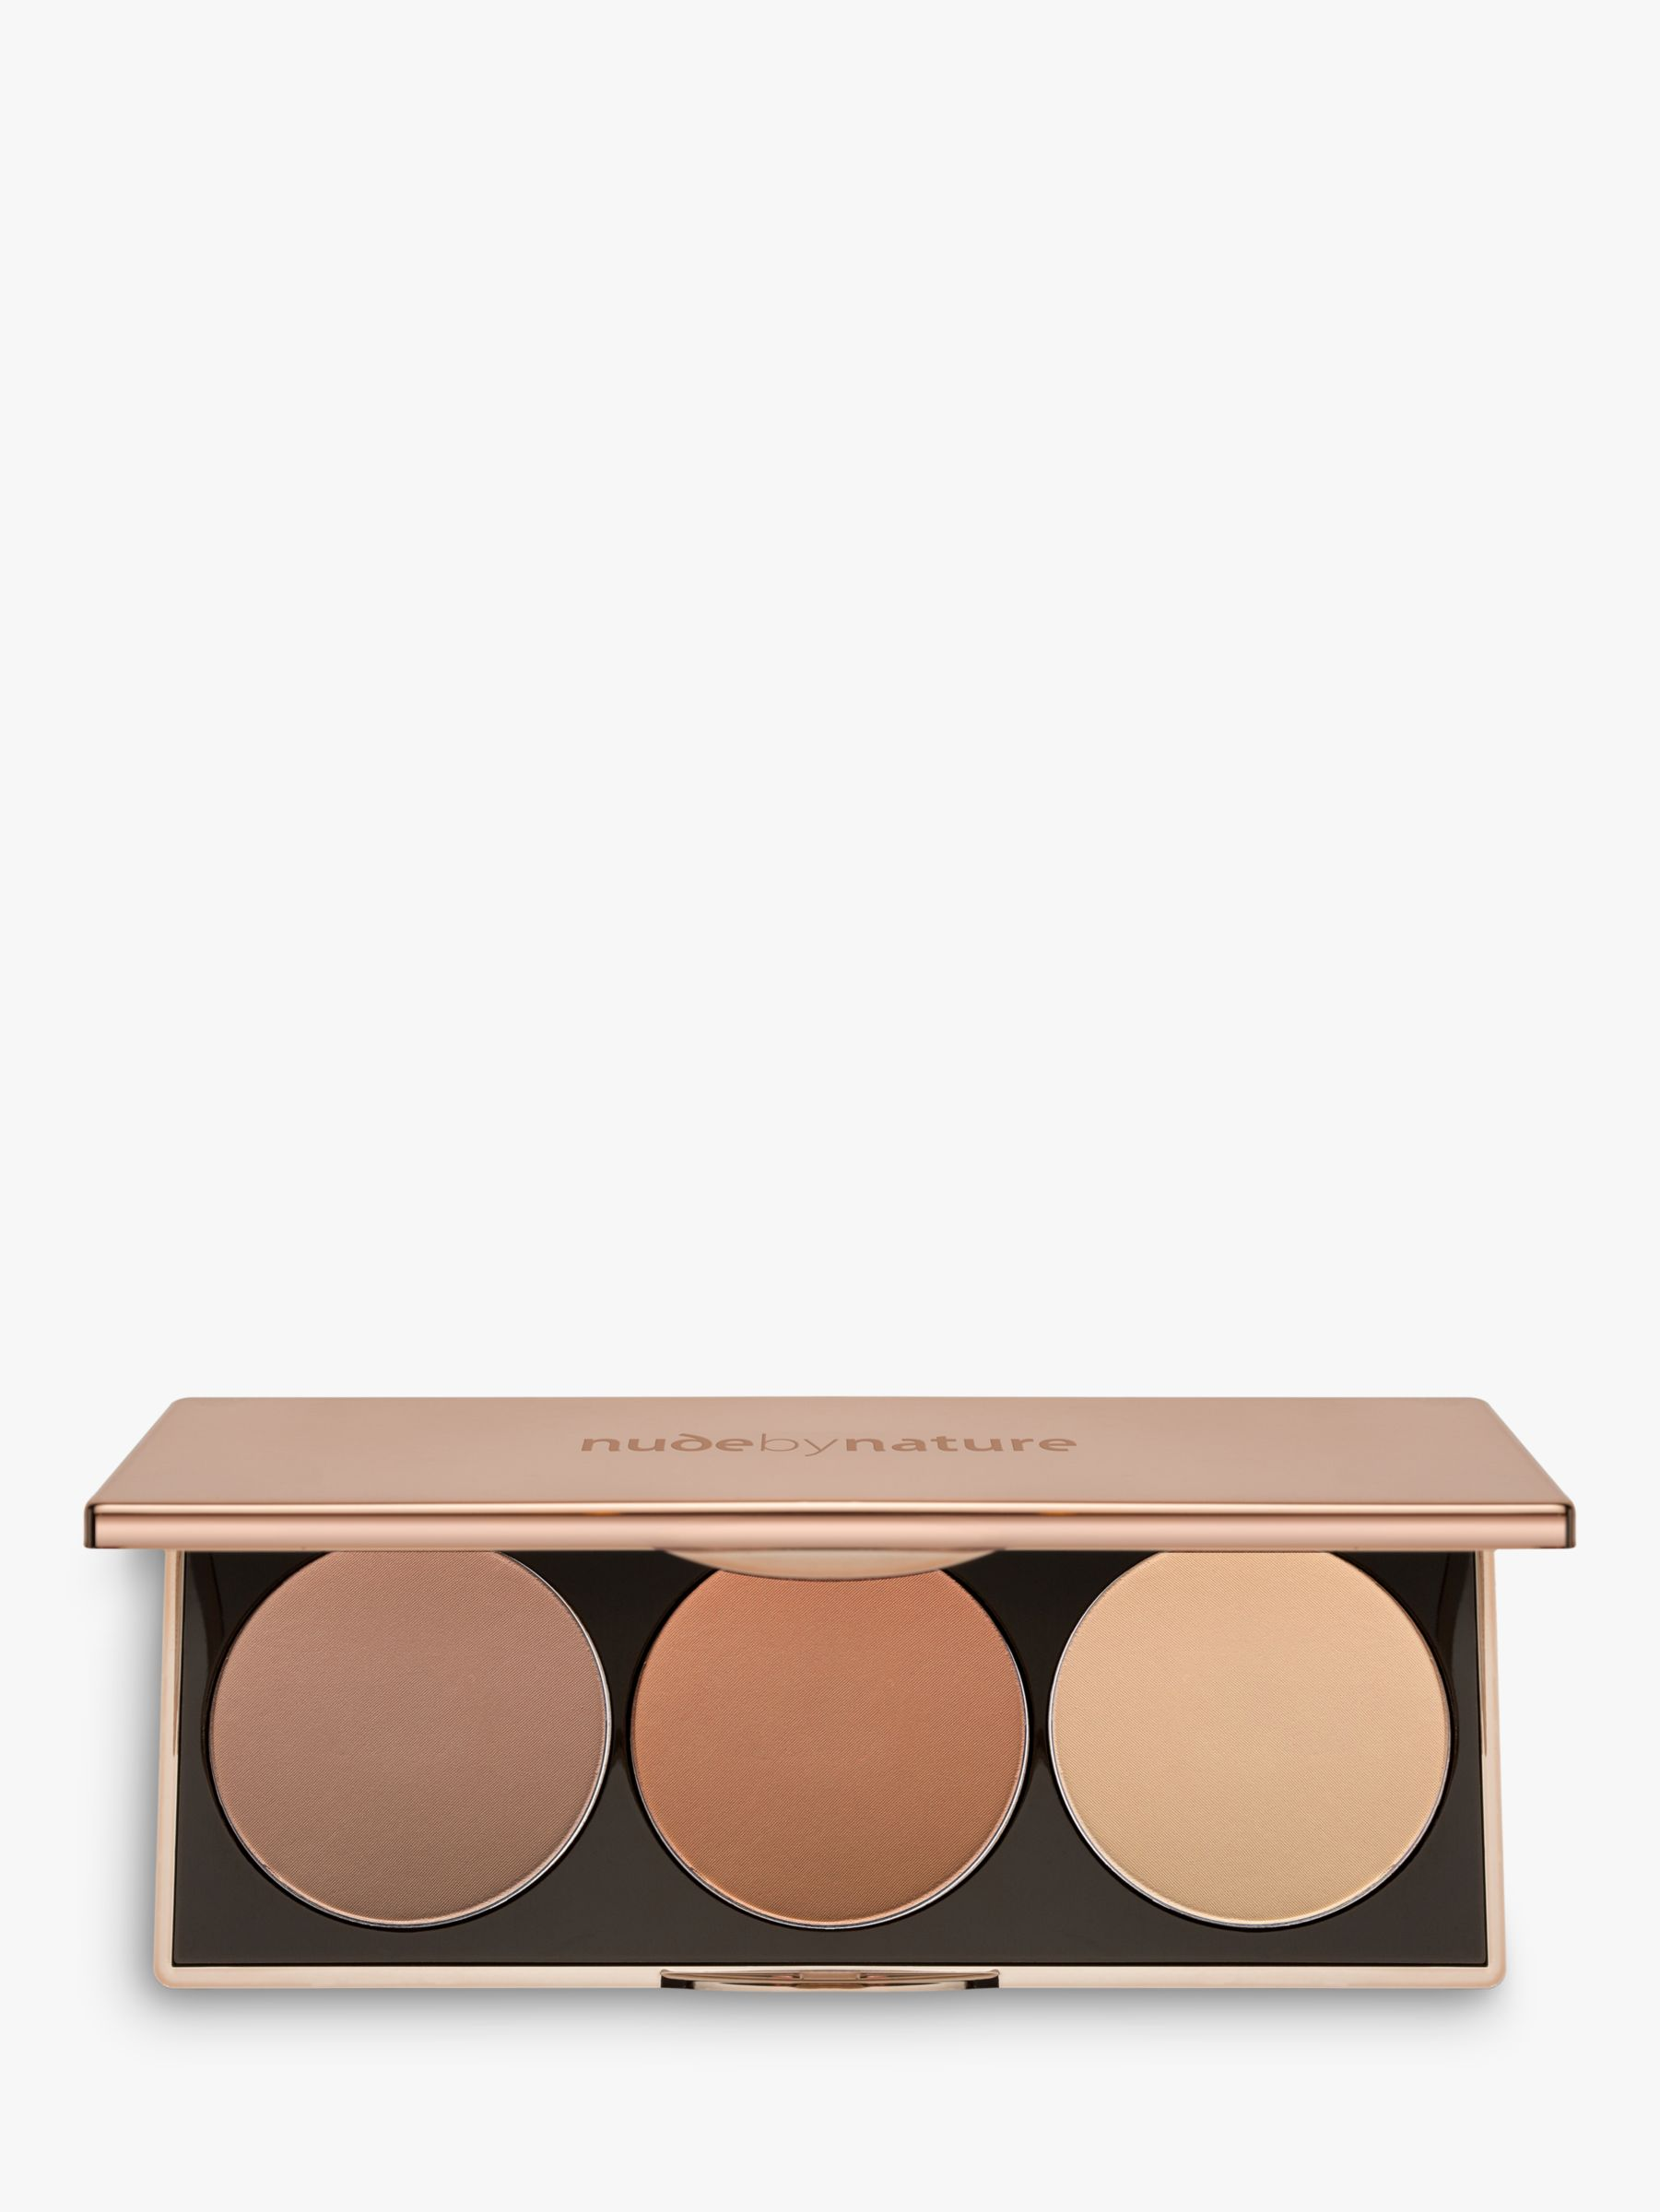 Nude by Nature Nude by Nature Contour Palette, Multi